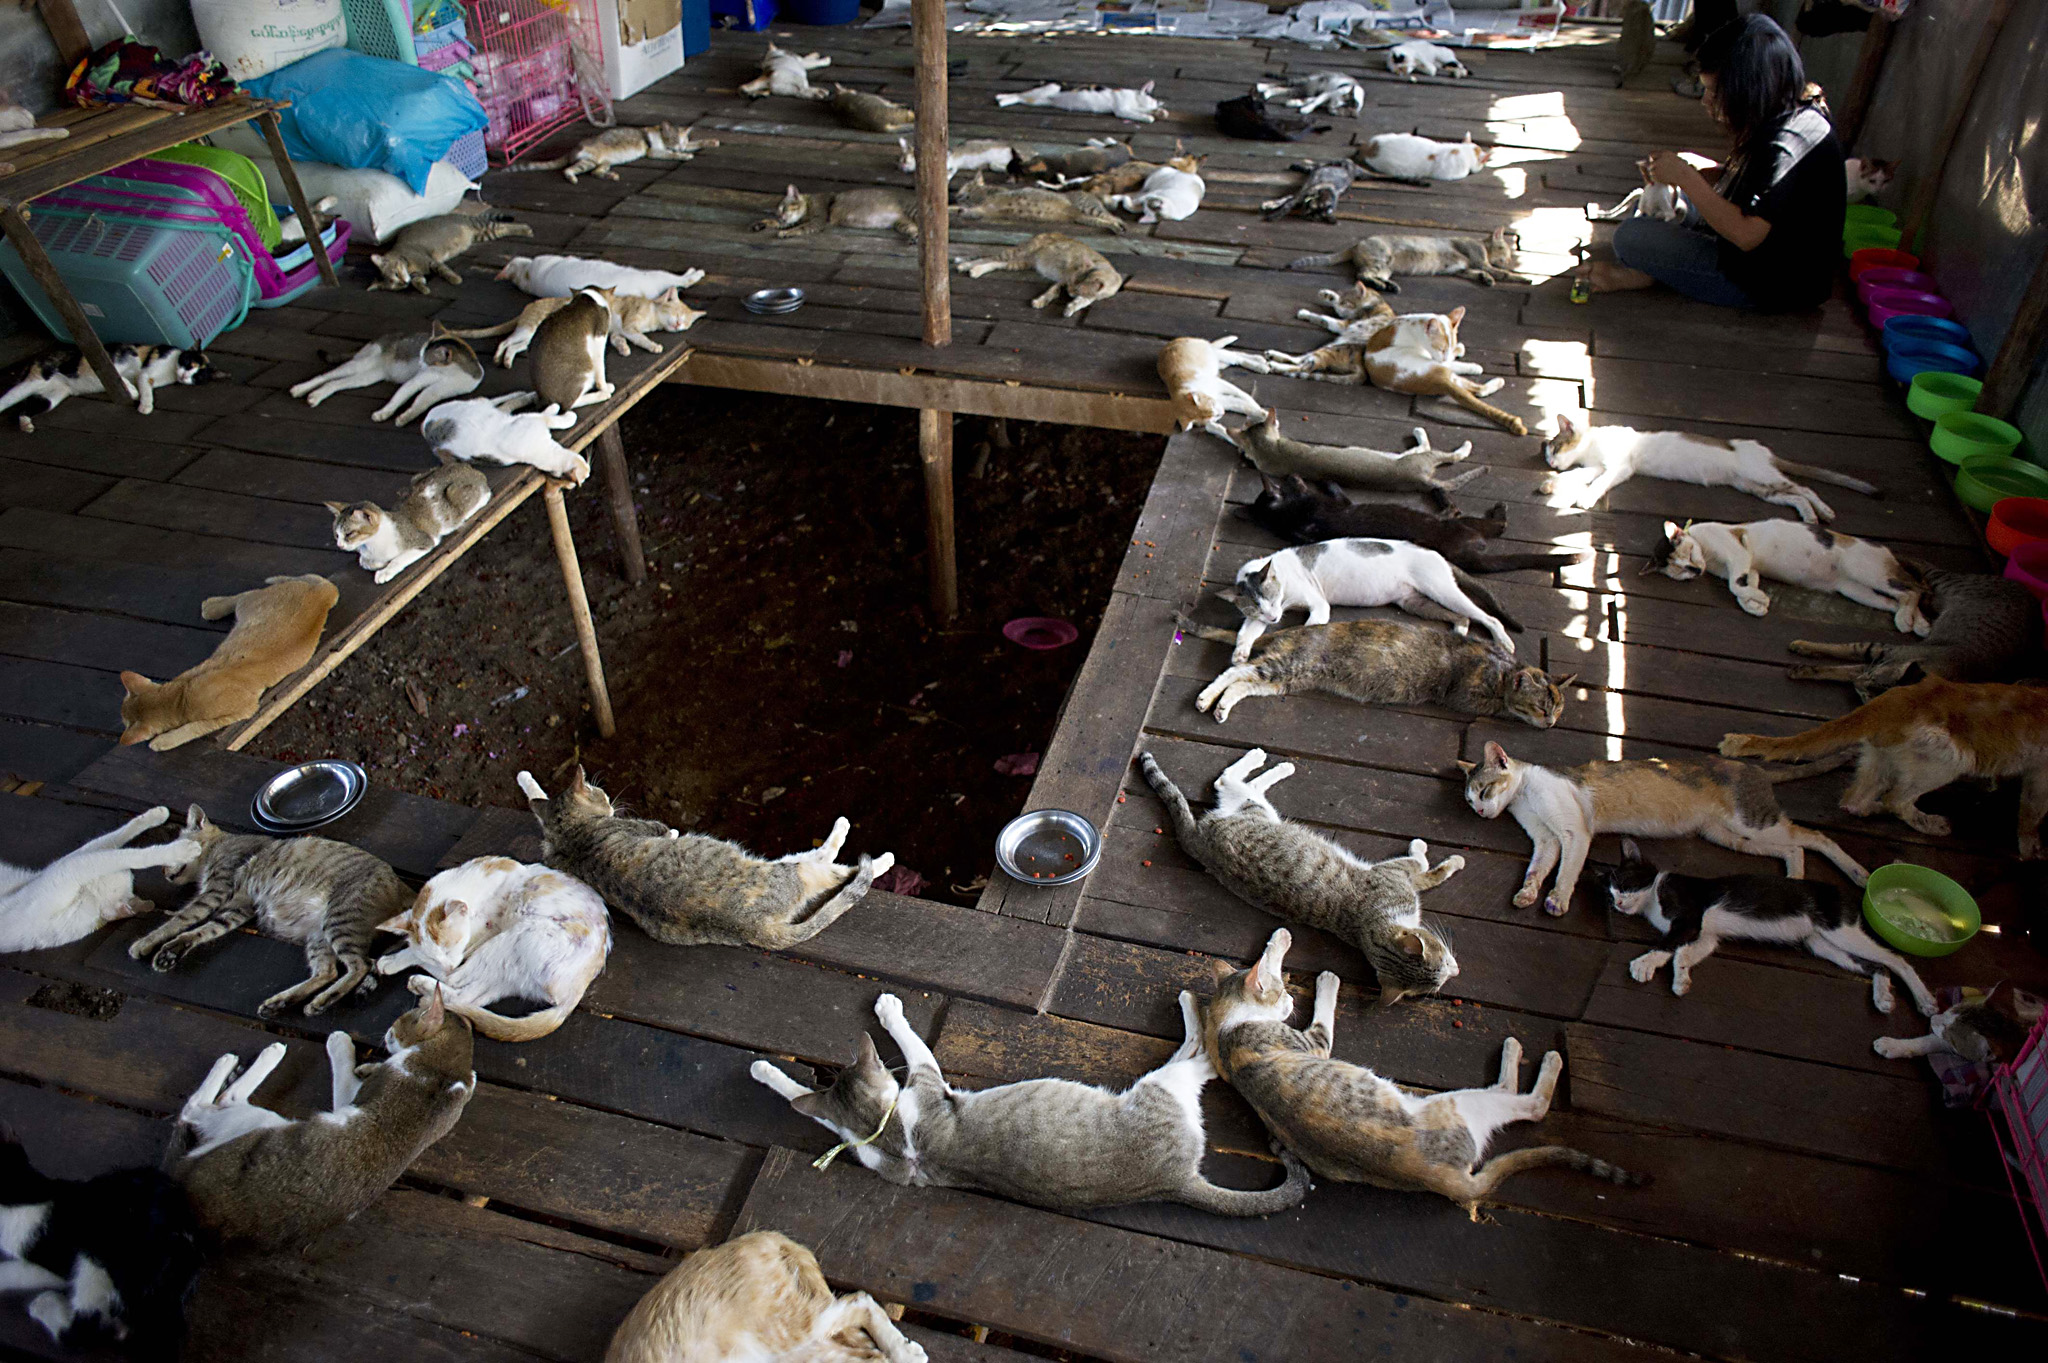 This photo taken on February 4, 2016 sho...This photo taken on February 4, 2016 shows a woman working next to cats at a shelter on the outskirts of Yangon. The shelter houses over 200 animals and are provided food and basic medical treatments which owners say were rescued from Yangon streets. AFP PHOTO / Ye Aung THUYe Aung Thu/AFP/Getty Images